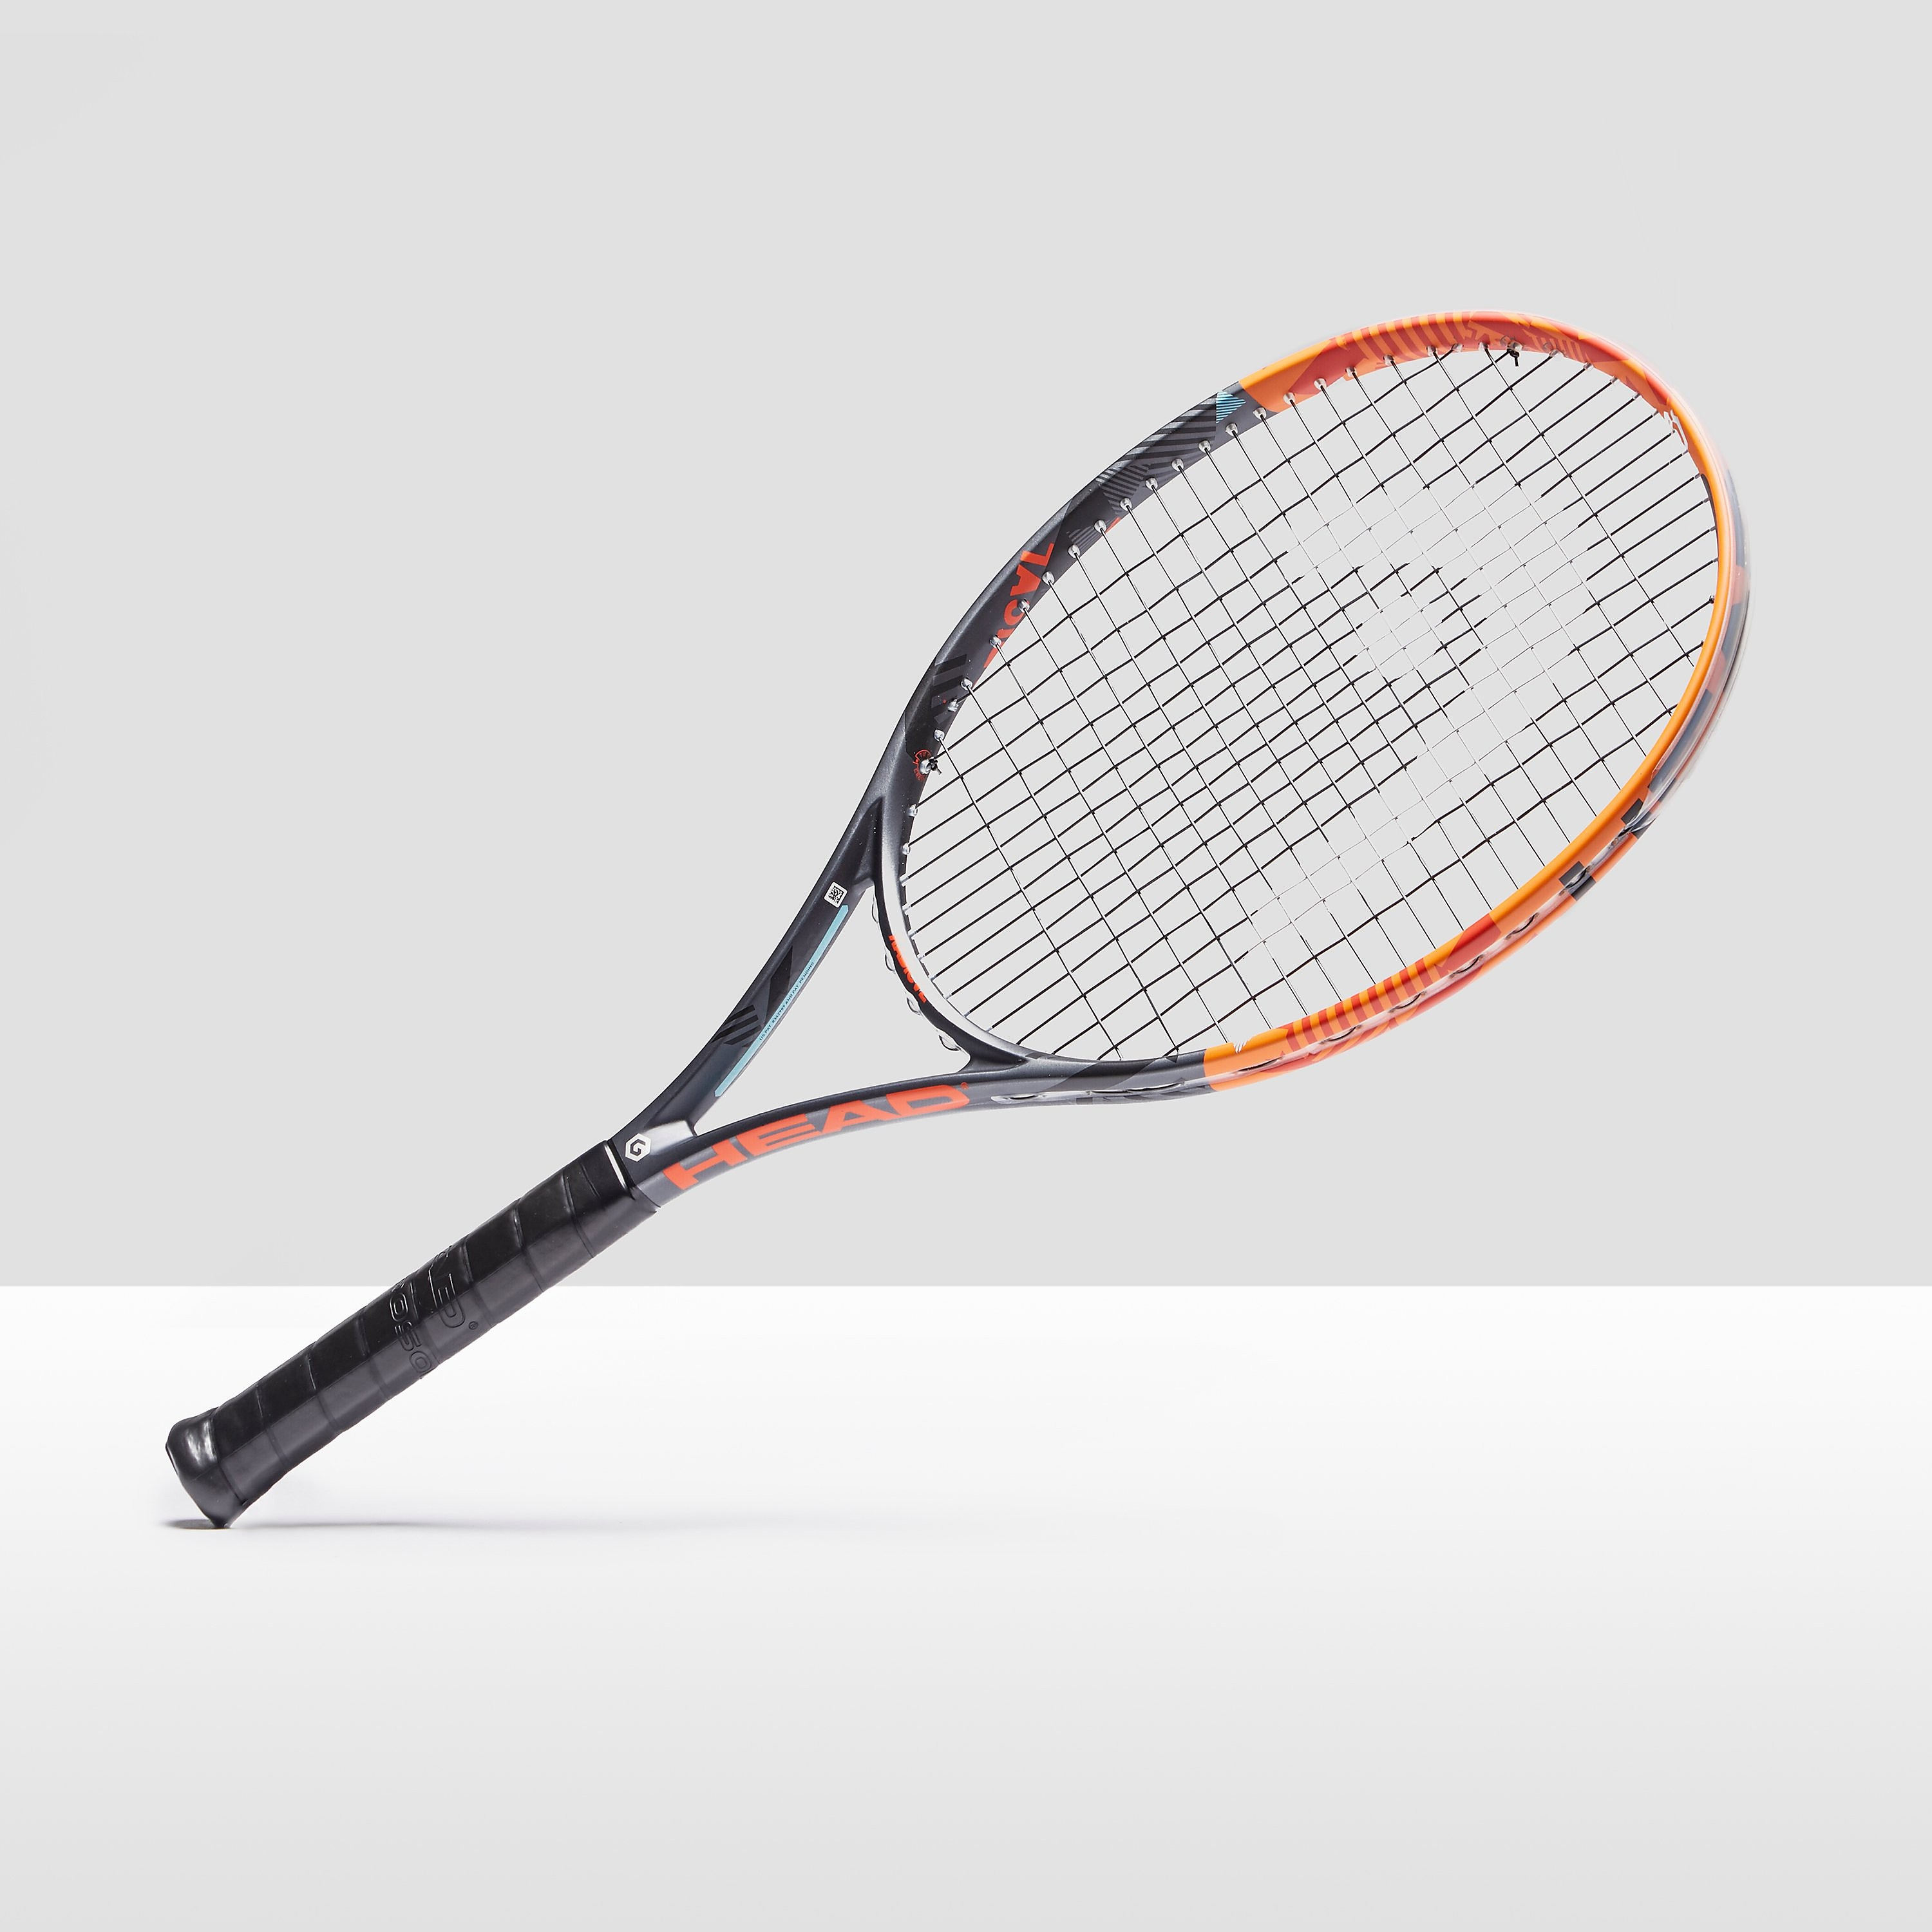 Head Graphene XT Radical Lite Tennis Racket